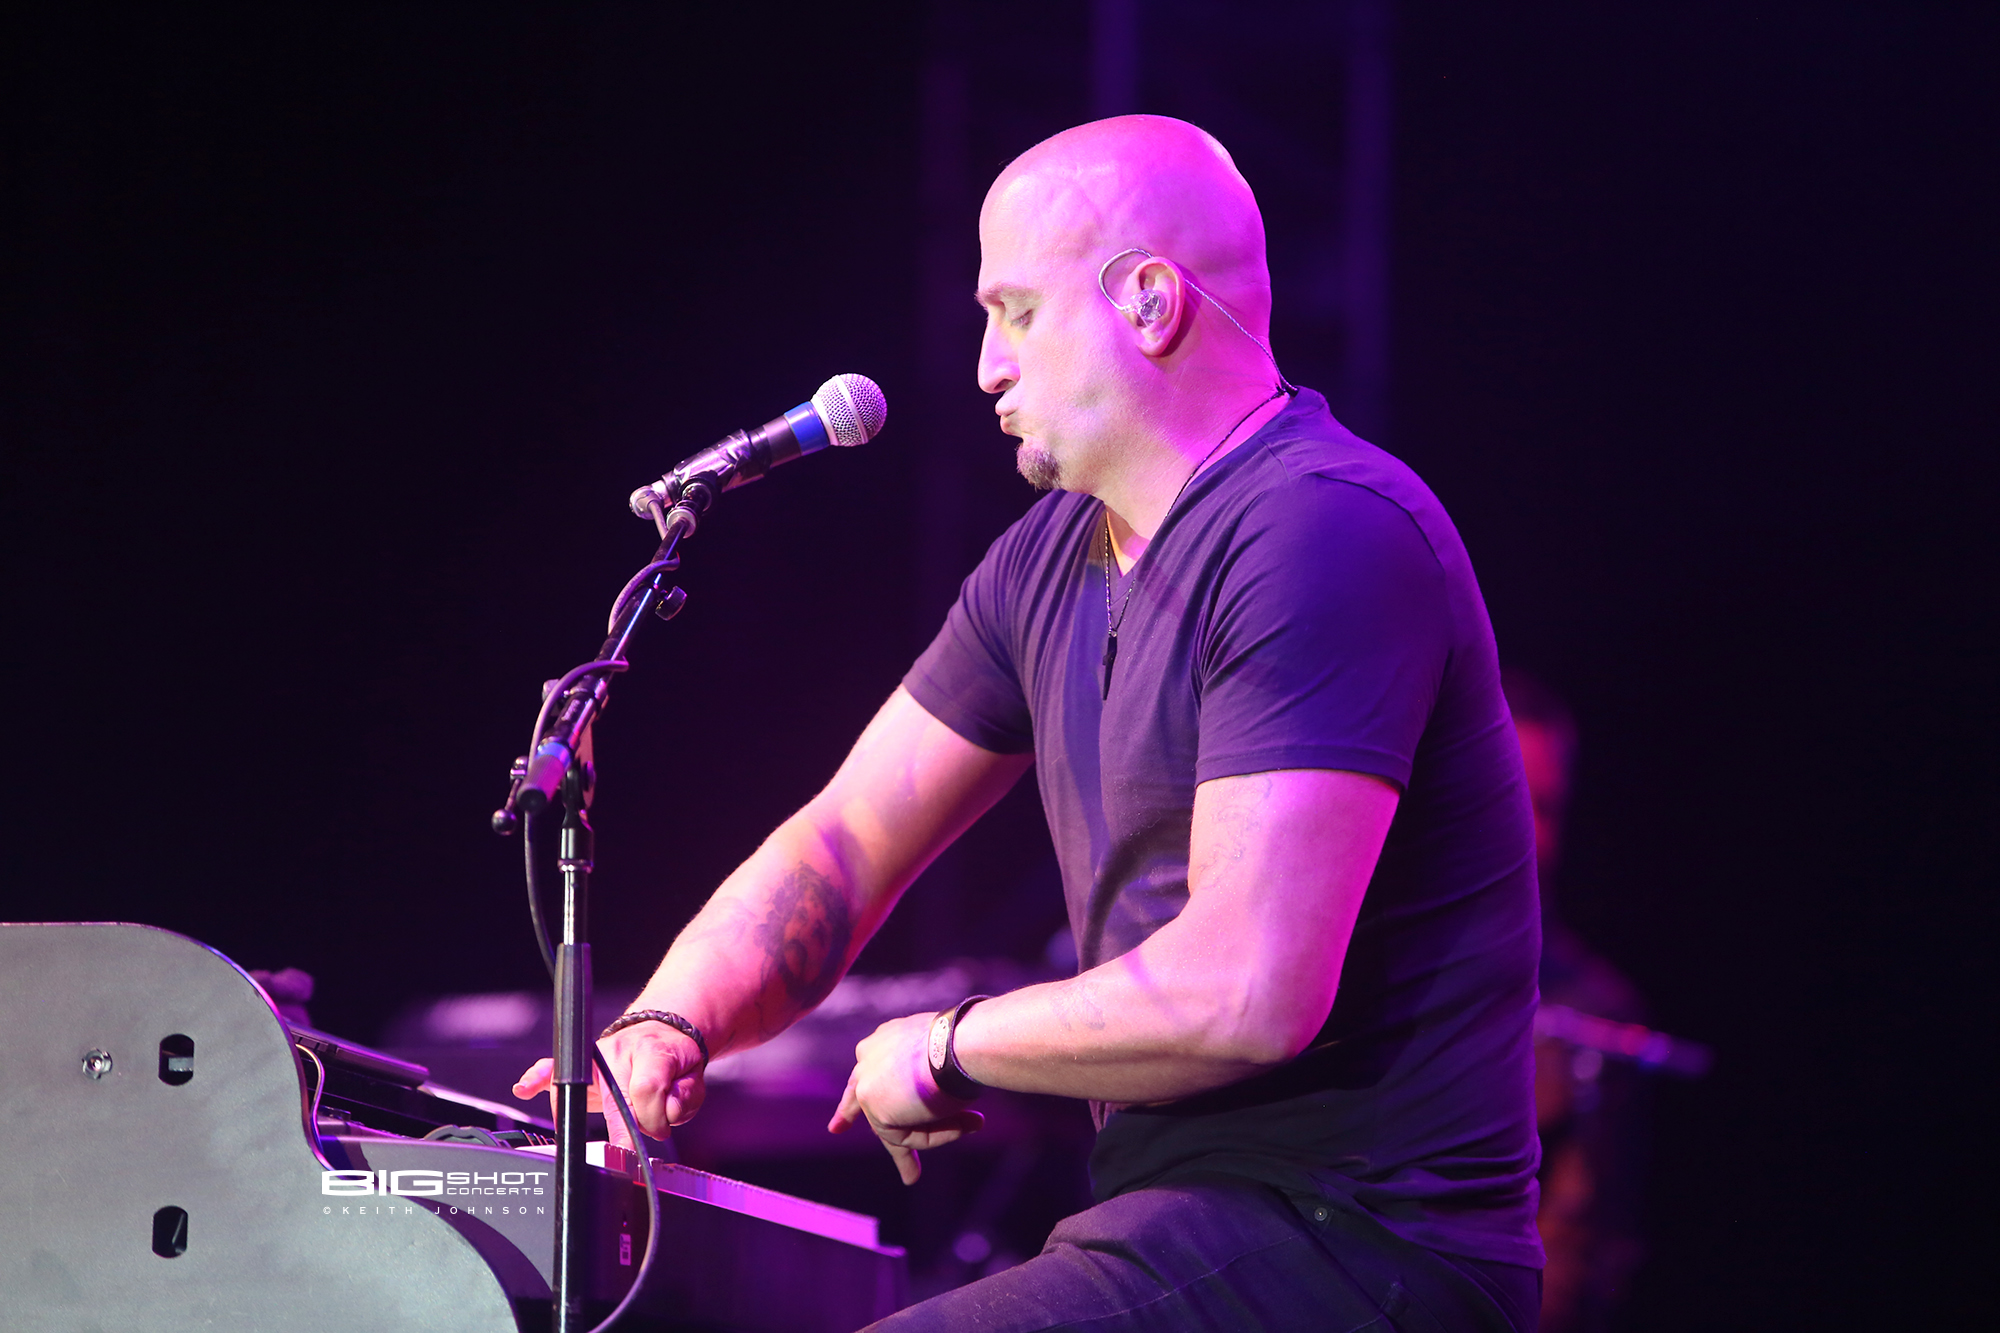 The Pavilion Concert - Mike DelGuidice & Big Shot